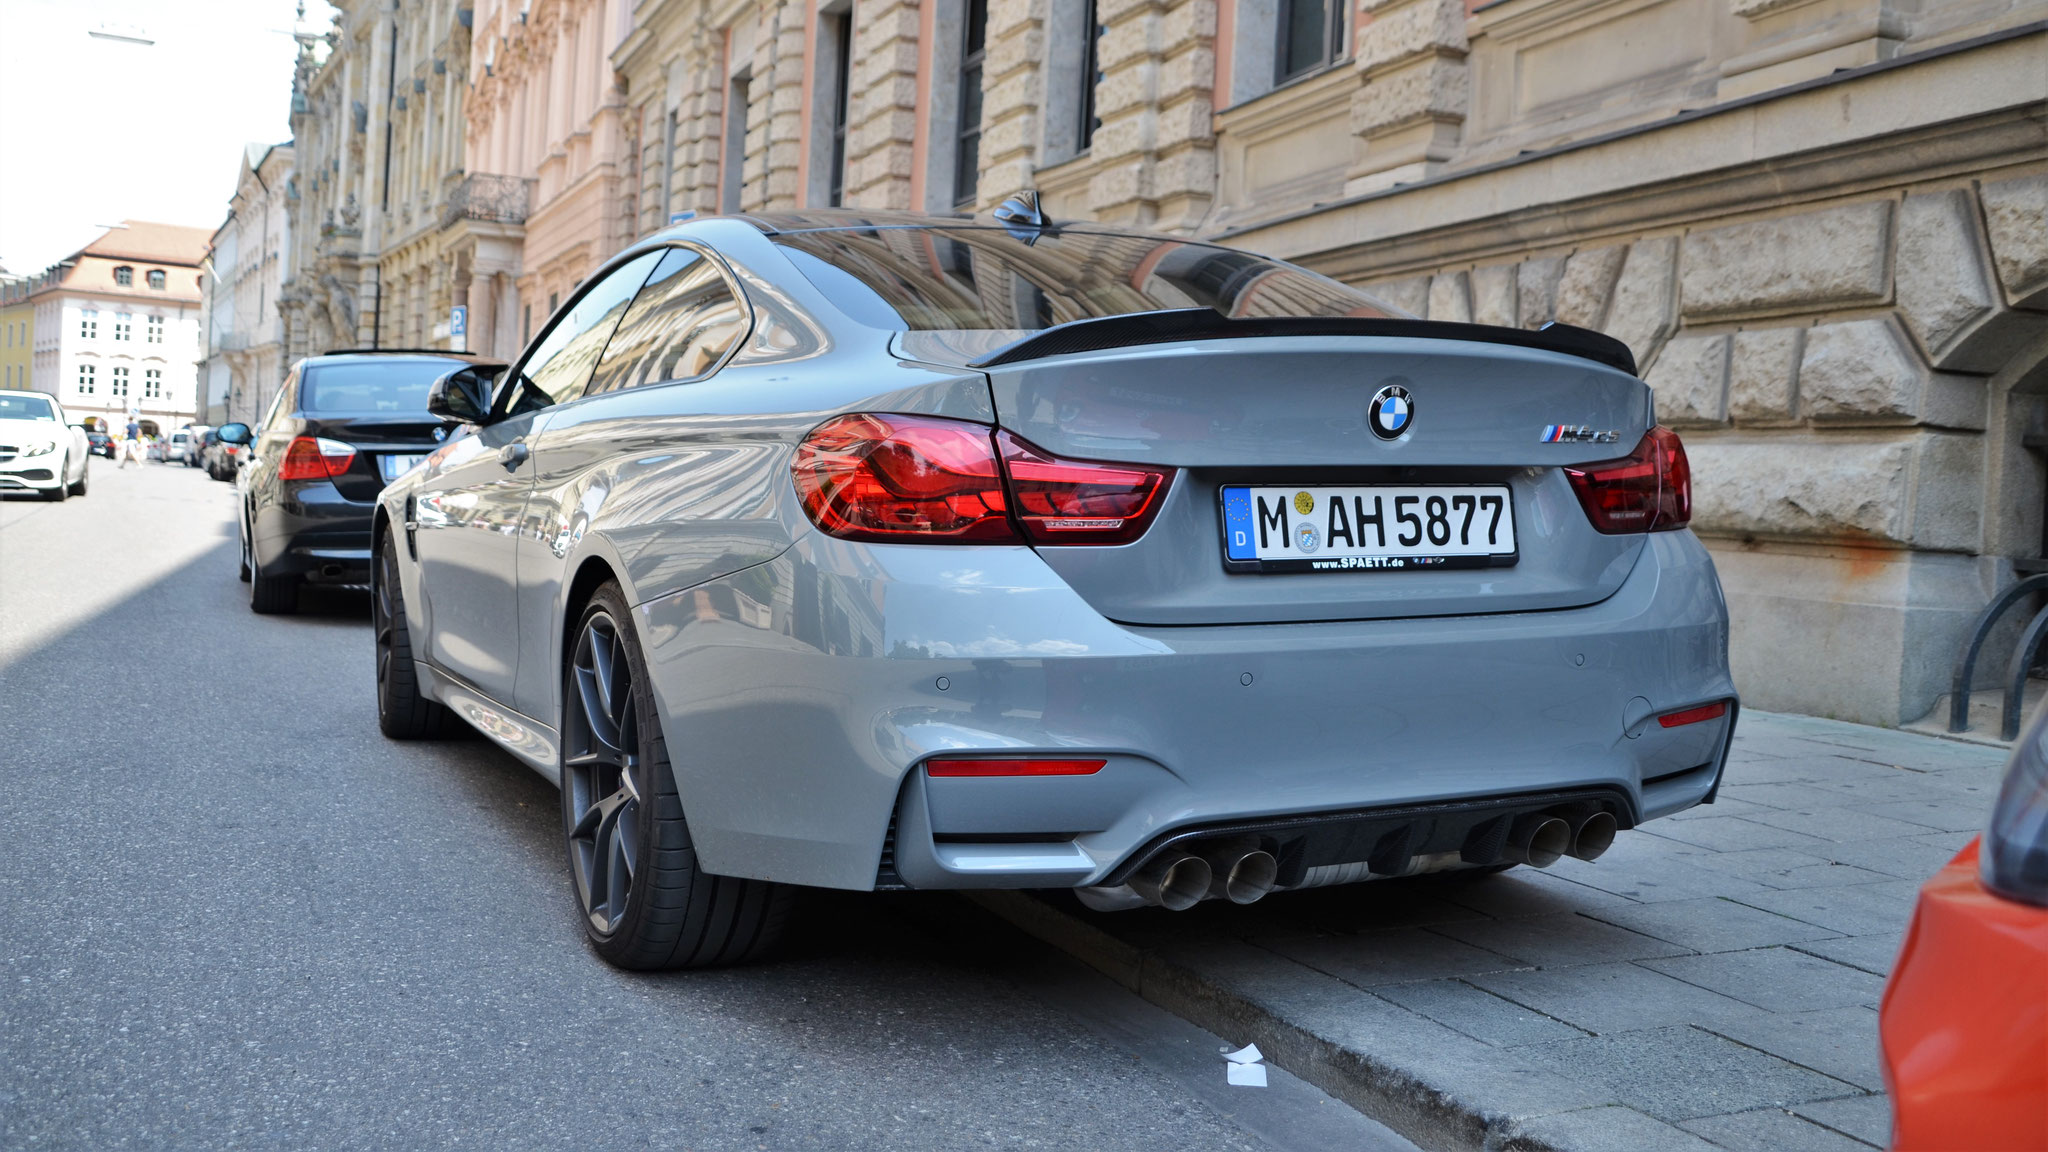 BMW M4 CS - M-AH-5877